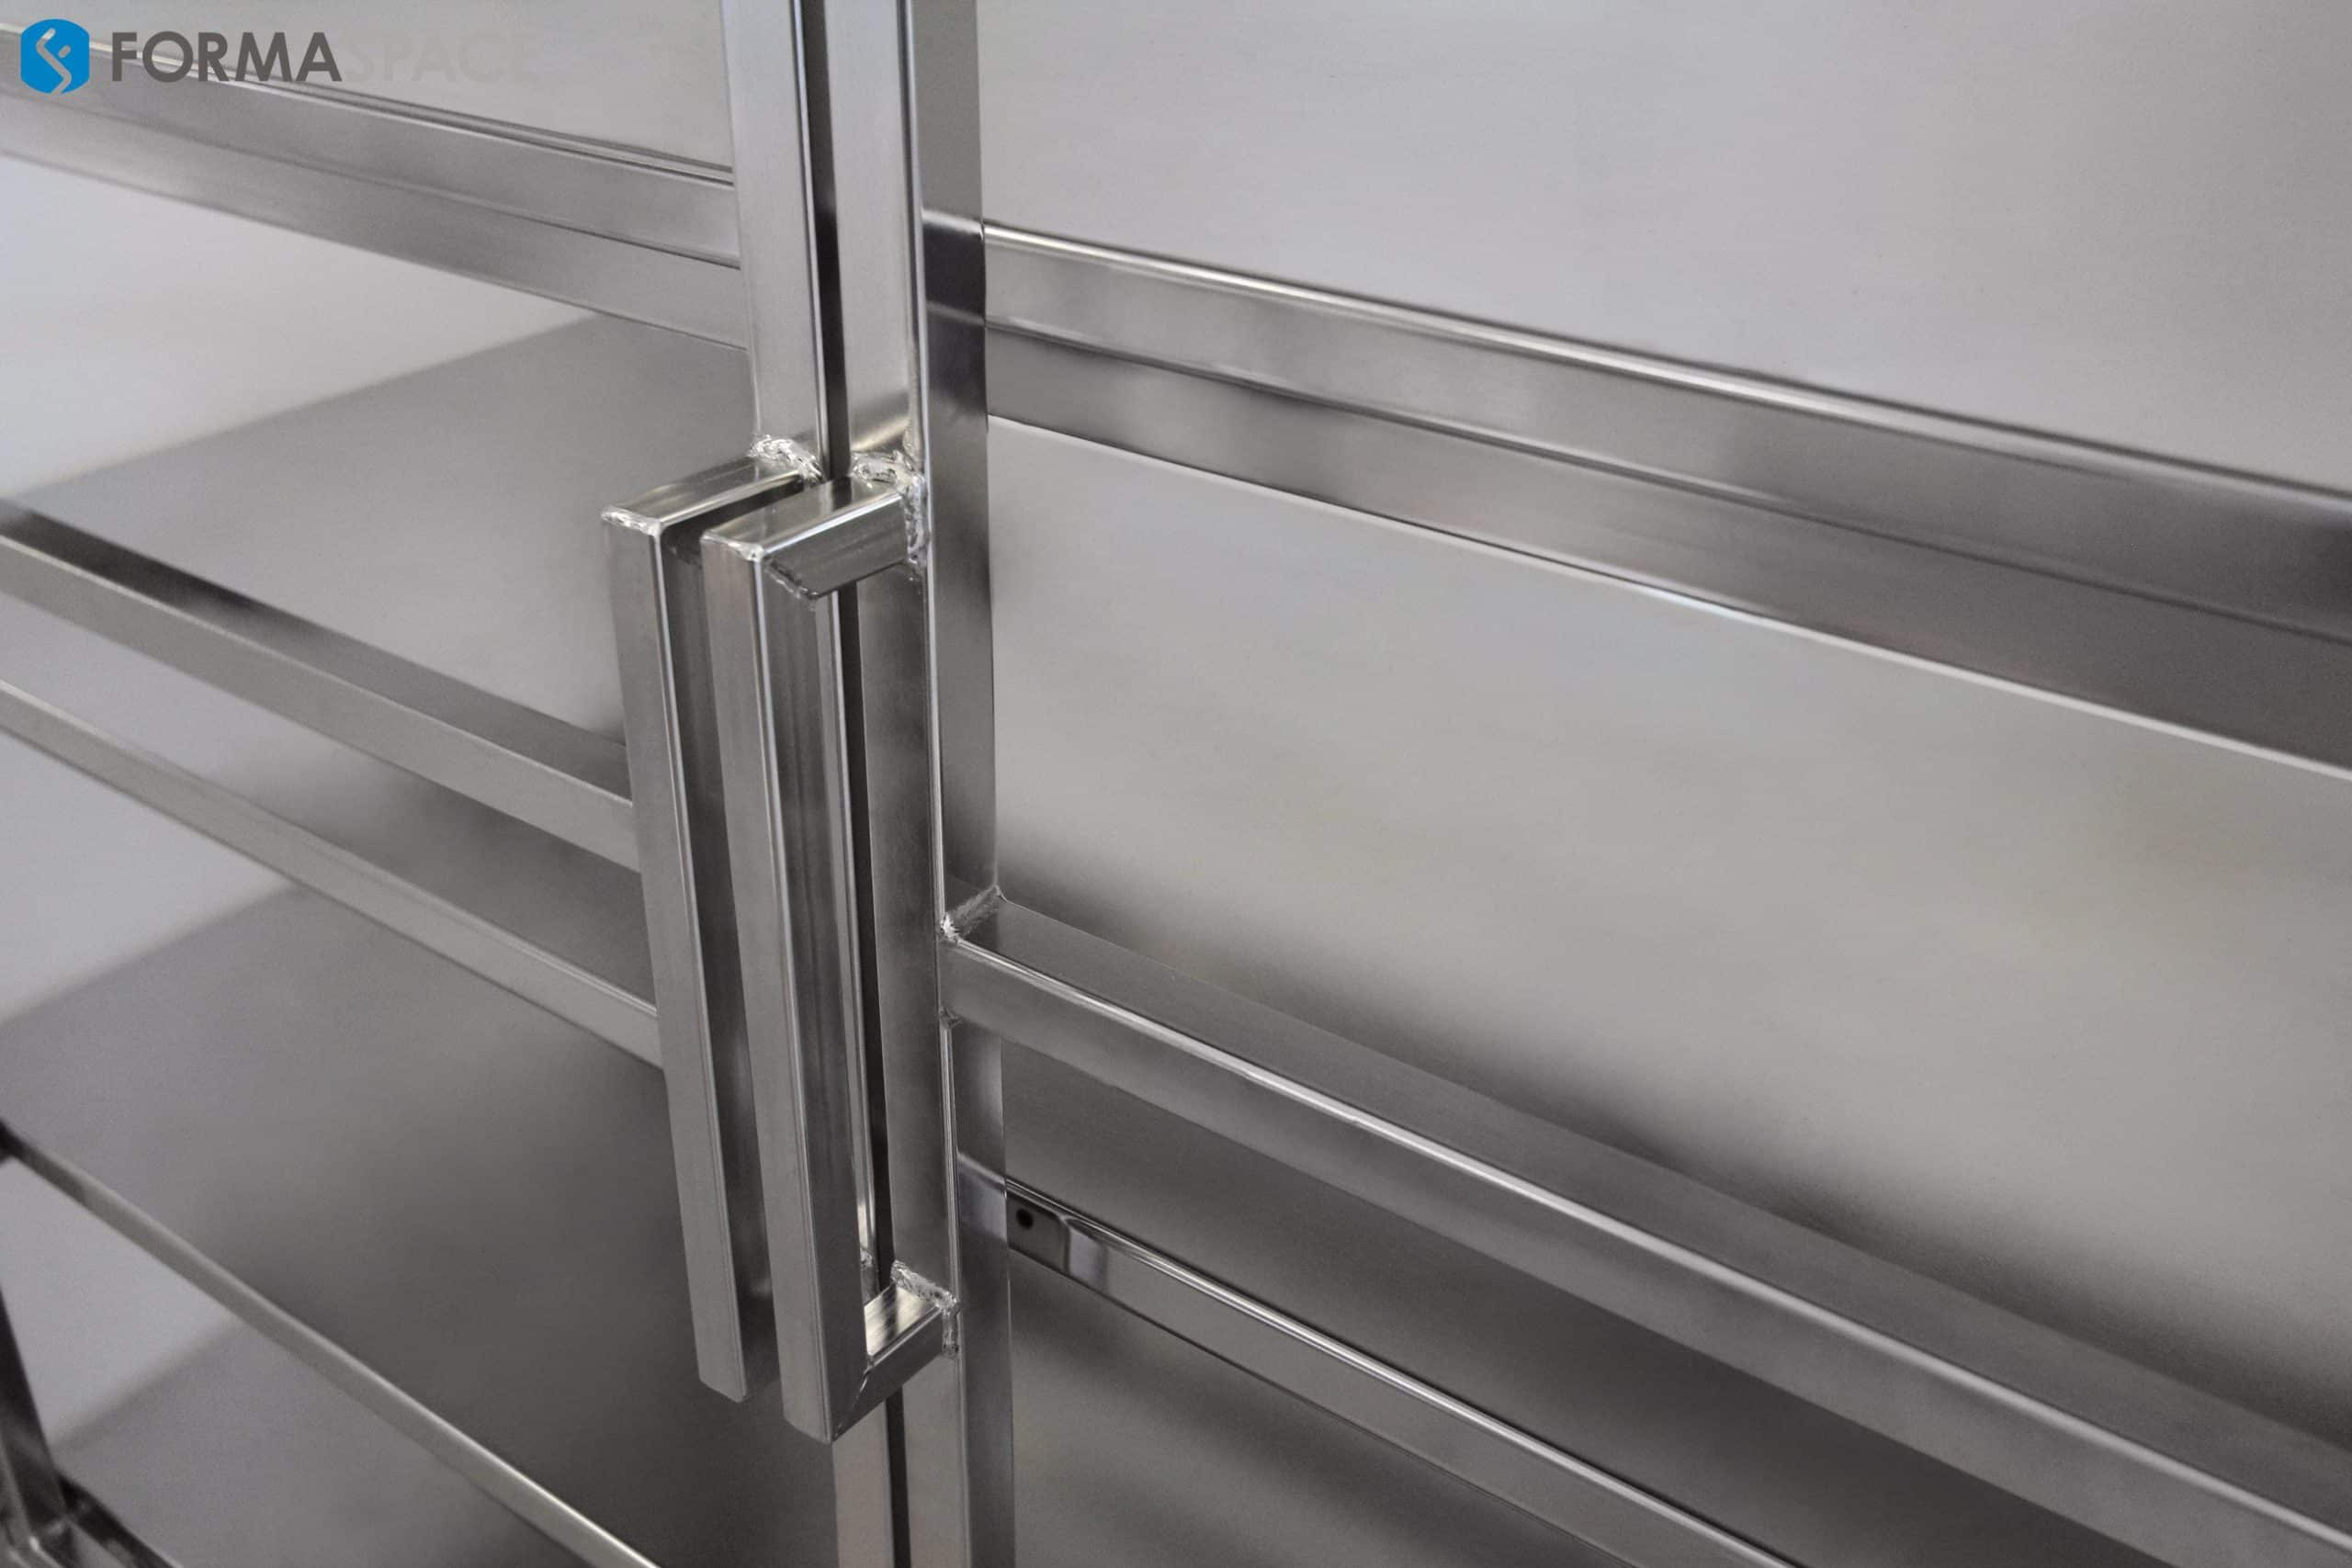 stainless steel cabinet frame